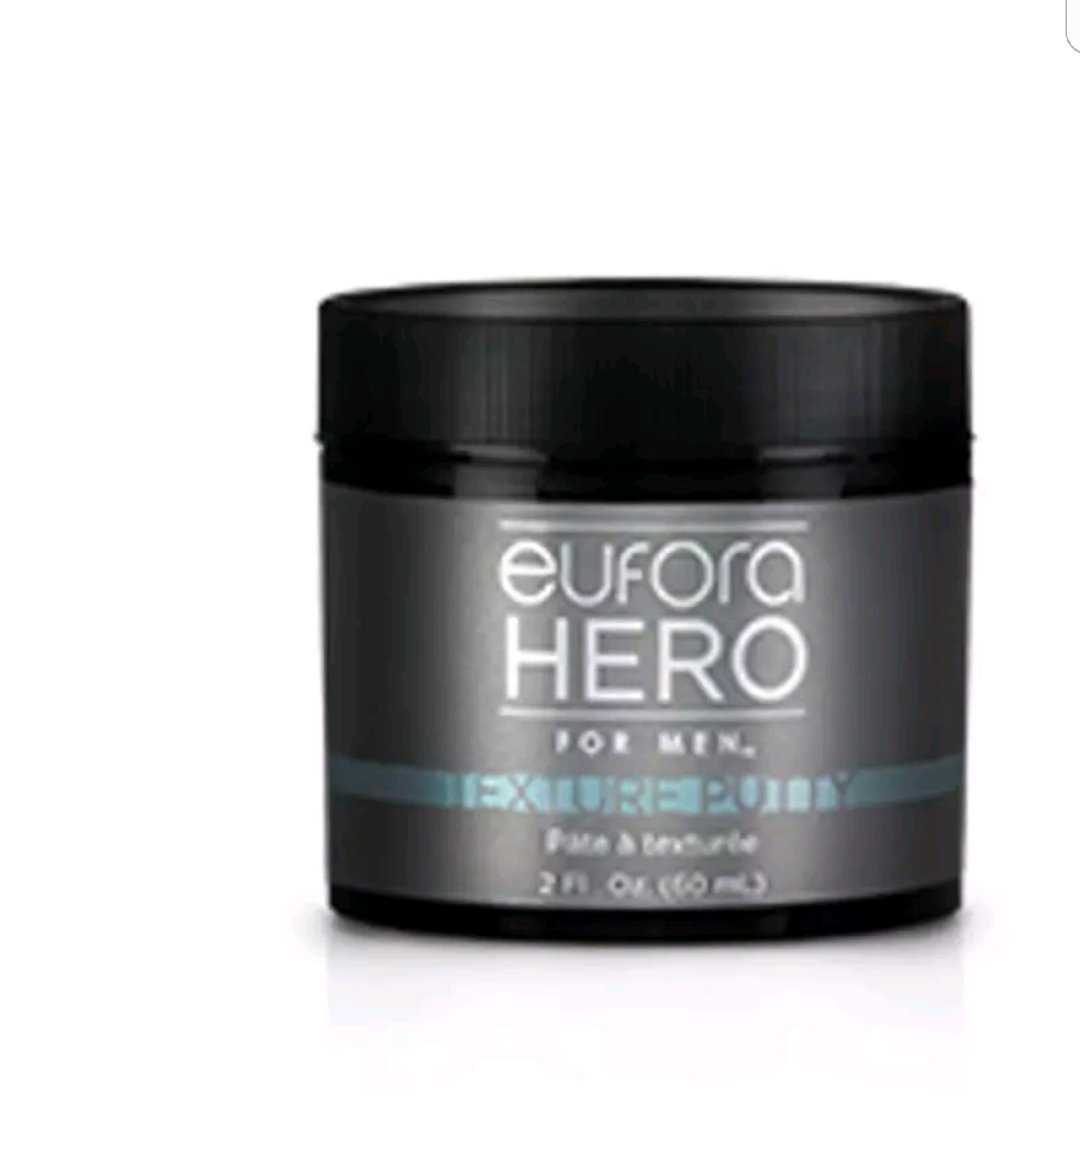 Eufora Hero For Men Texture Putty 2 oz Eufora Hair